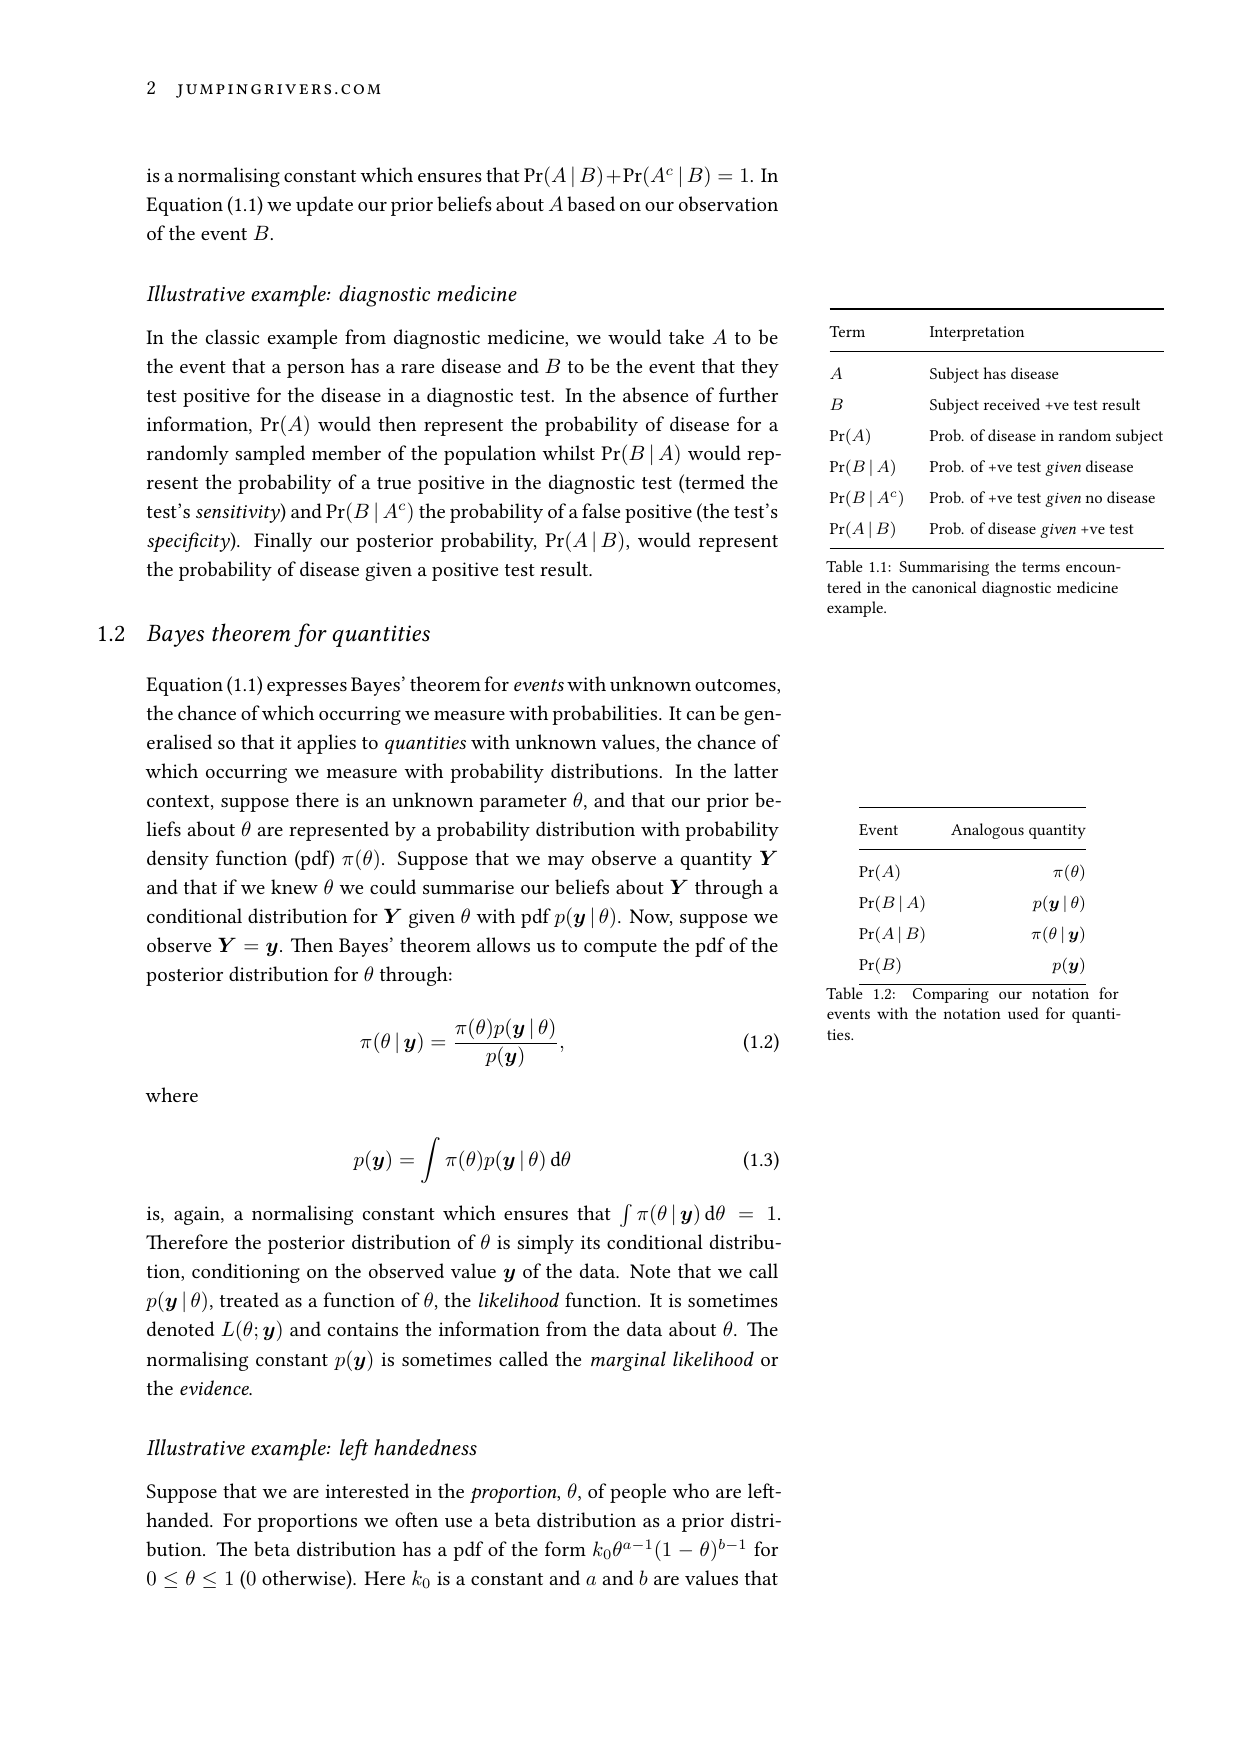 Example course material for 'Introduction to Bayesian Inference